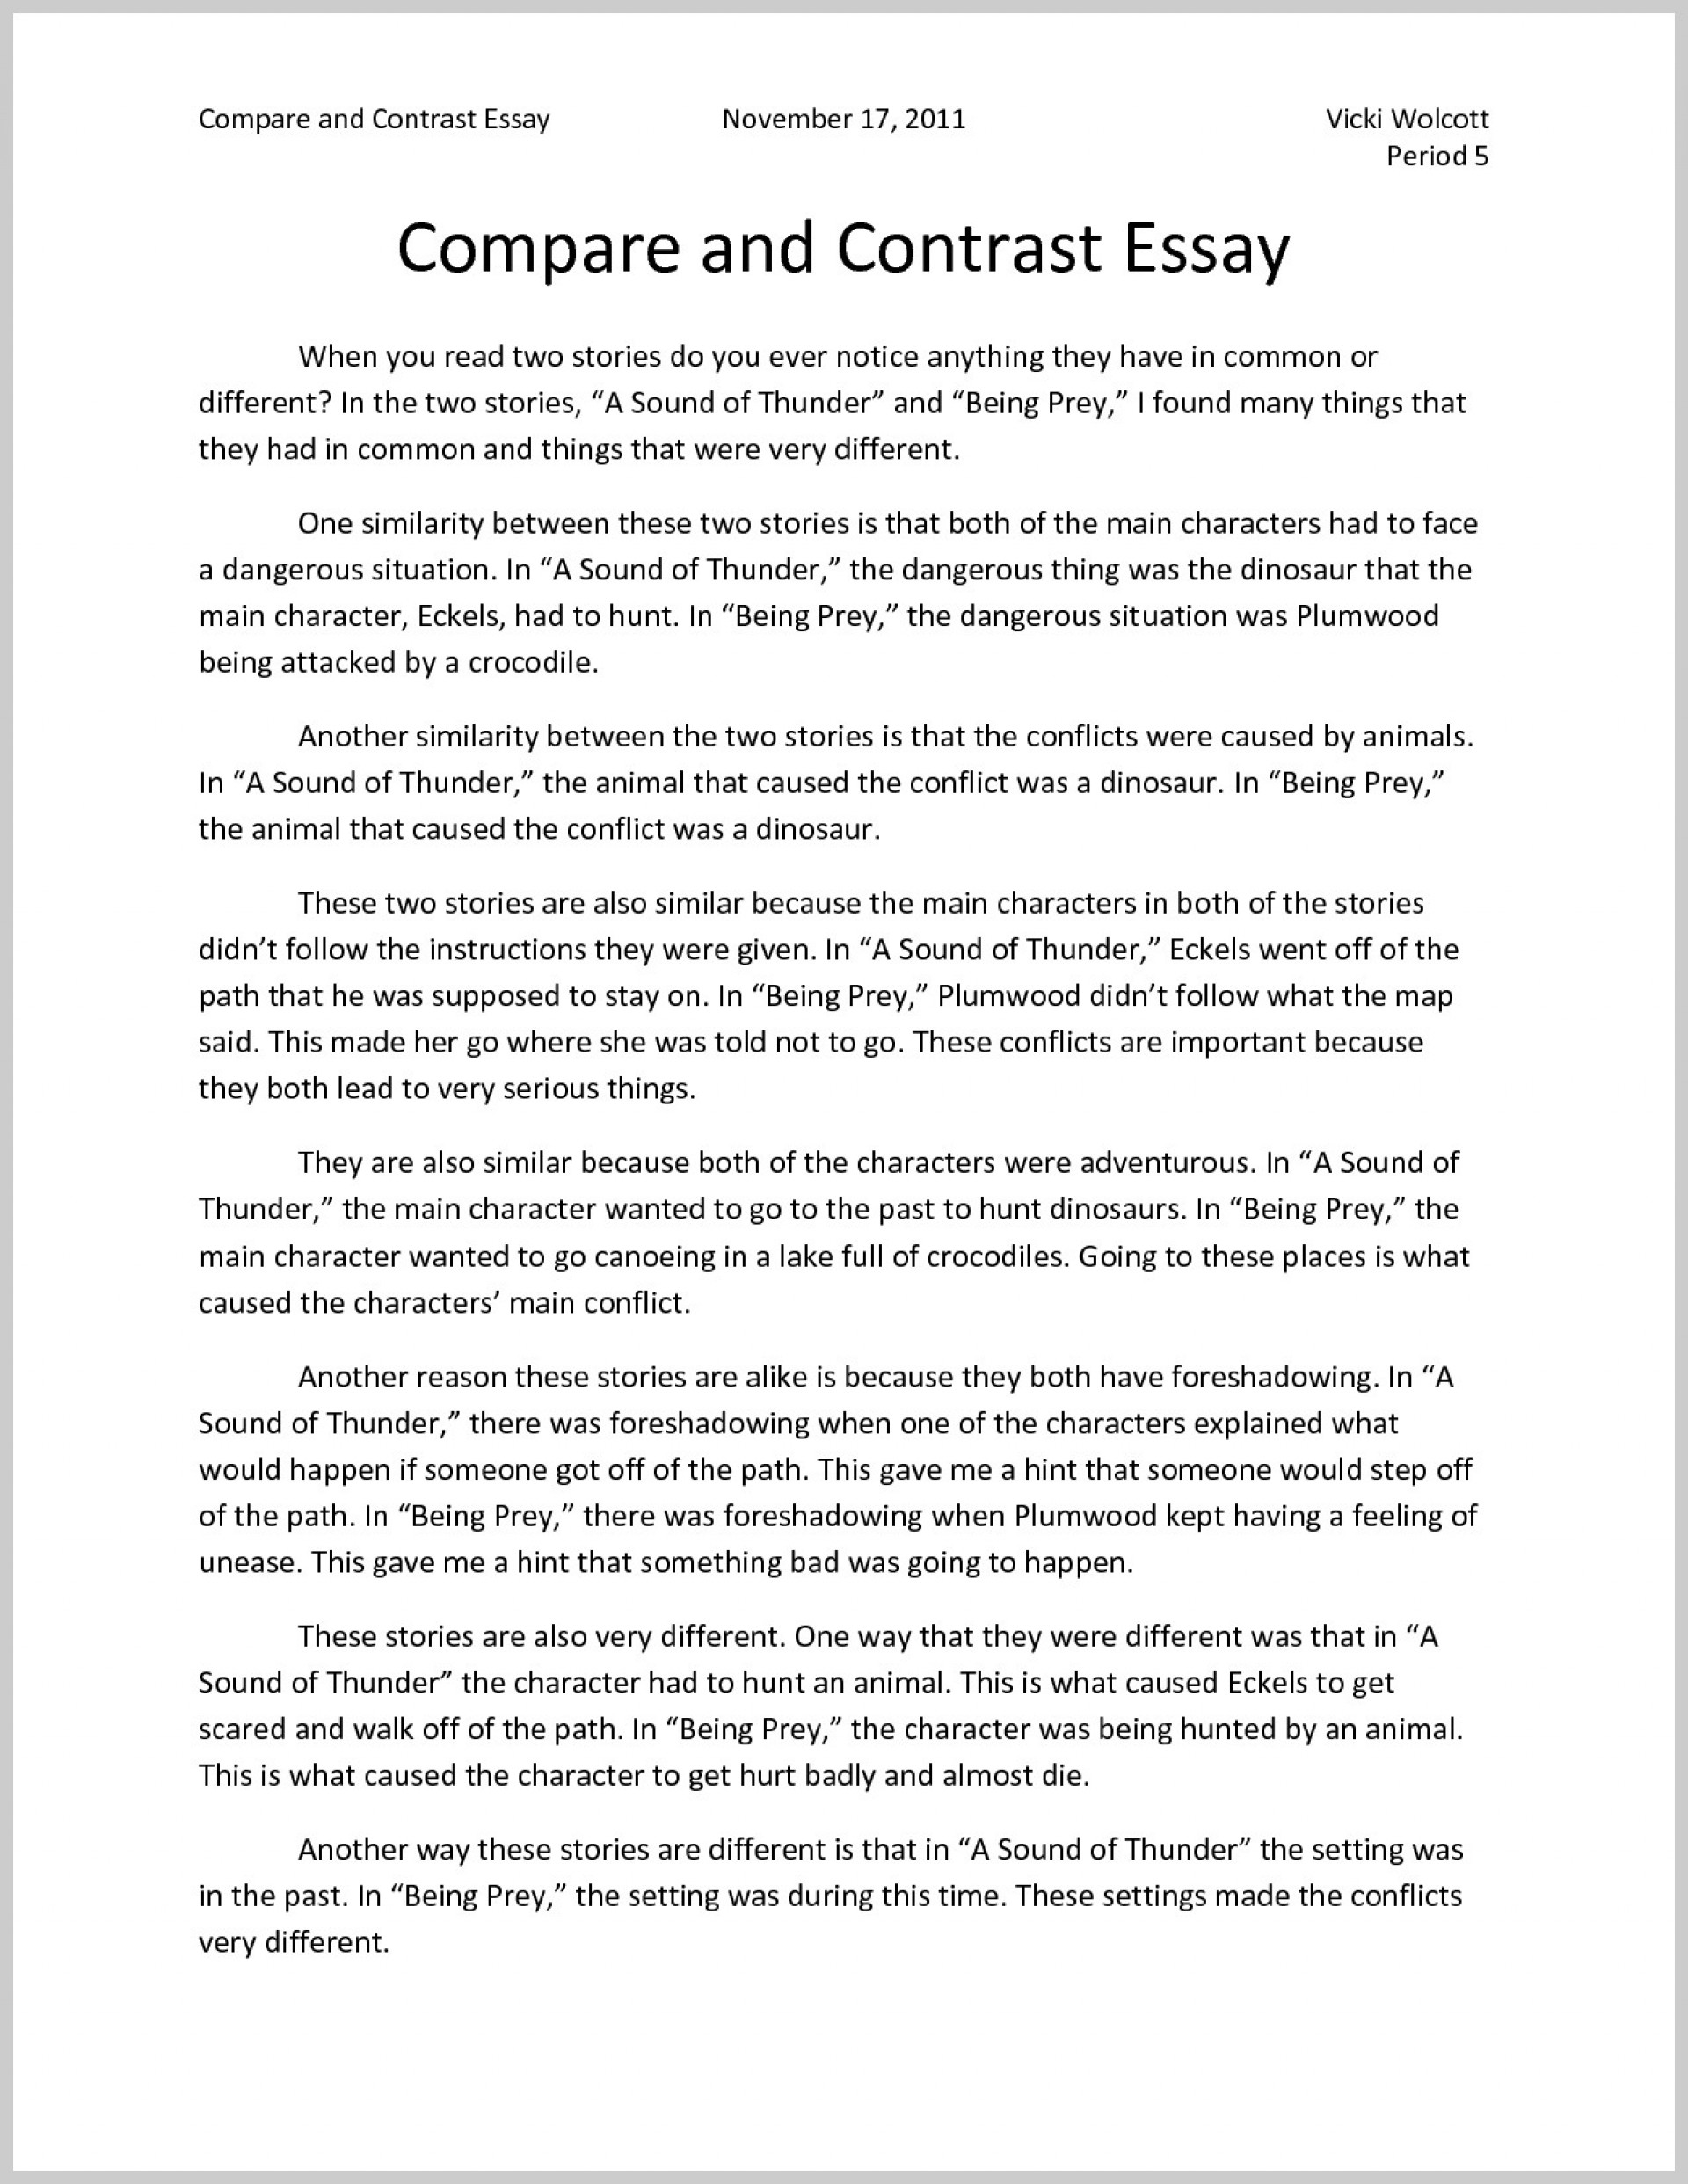 002 What Is Compare And Contrast Essay Example Striking A Does Comparison/contrast Look Like Should Provide Good Topic Sentence For 1920